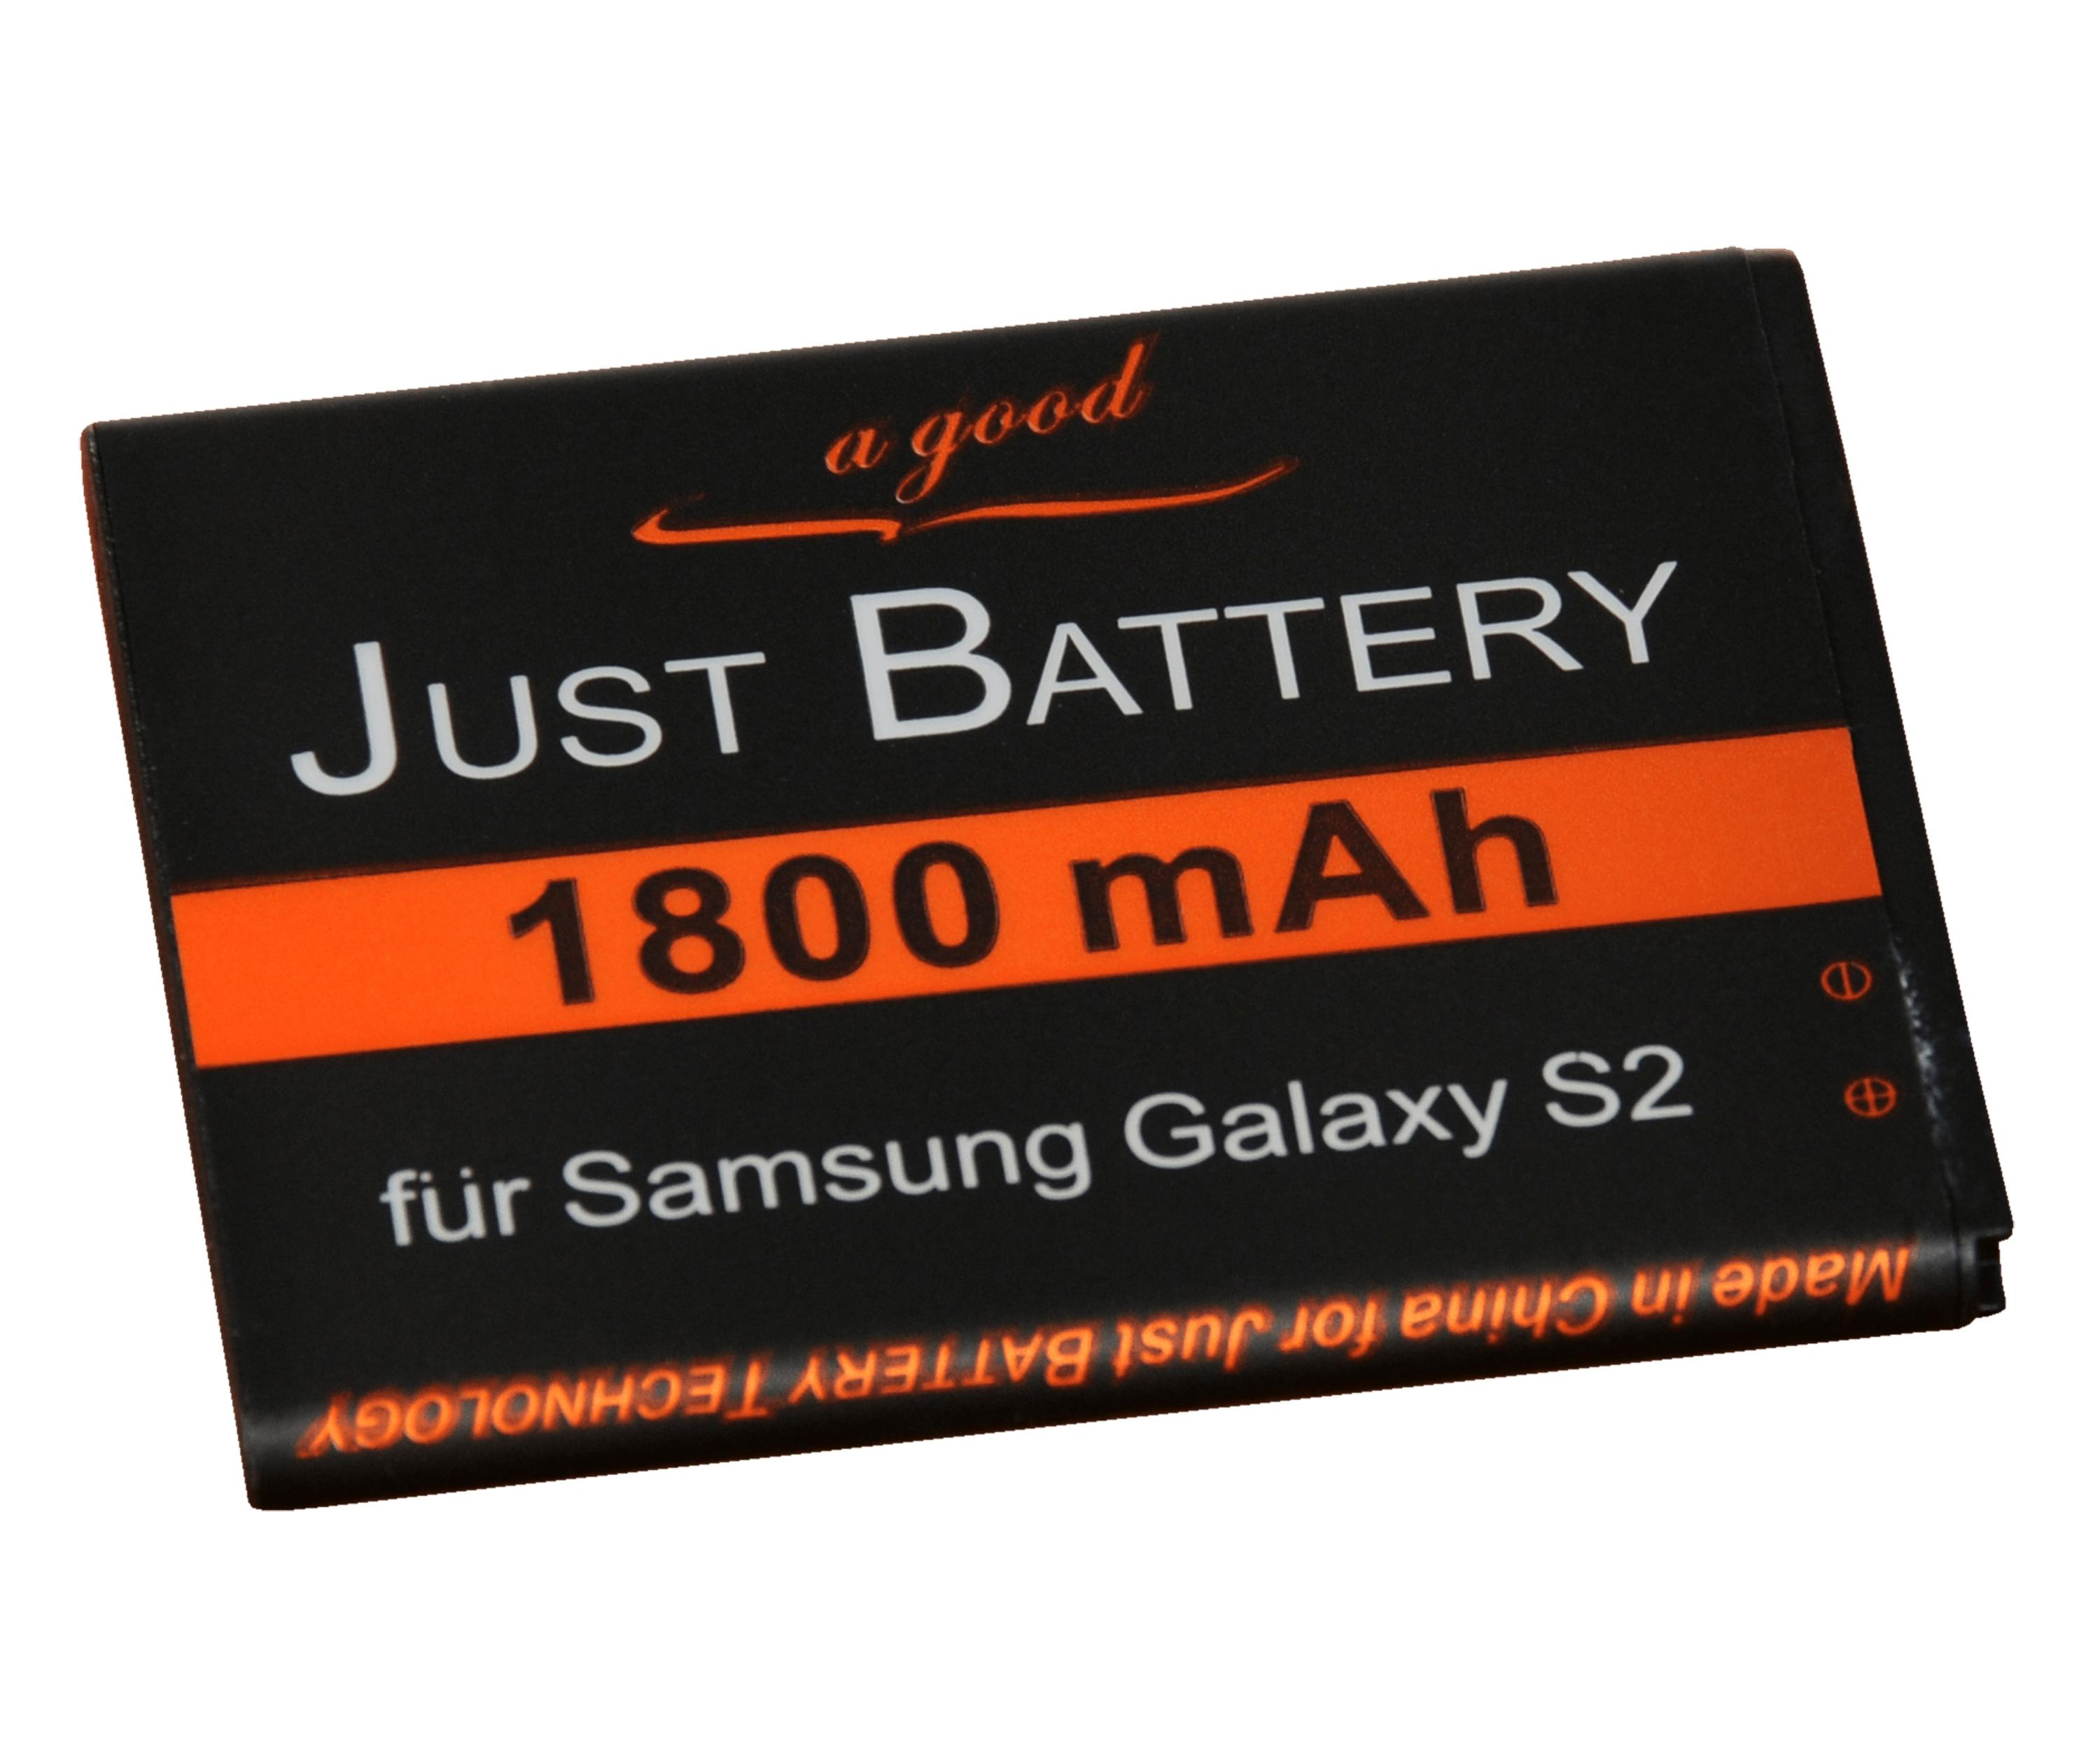 Battery for Samsung Galaxy S2 plus / S II plus GT-i9105